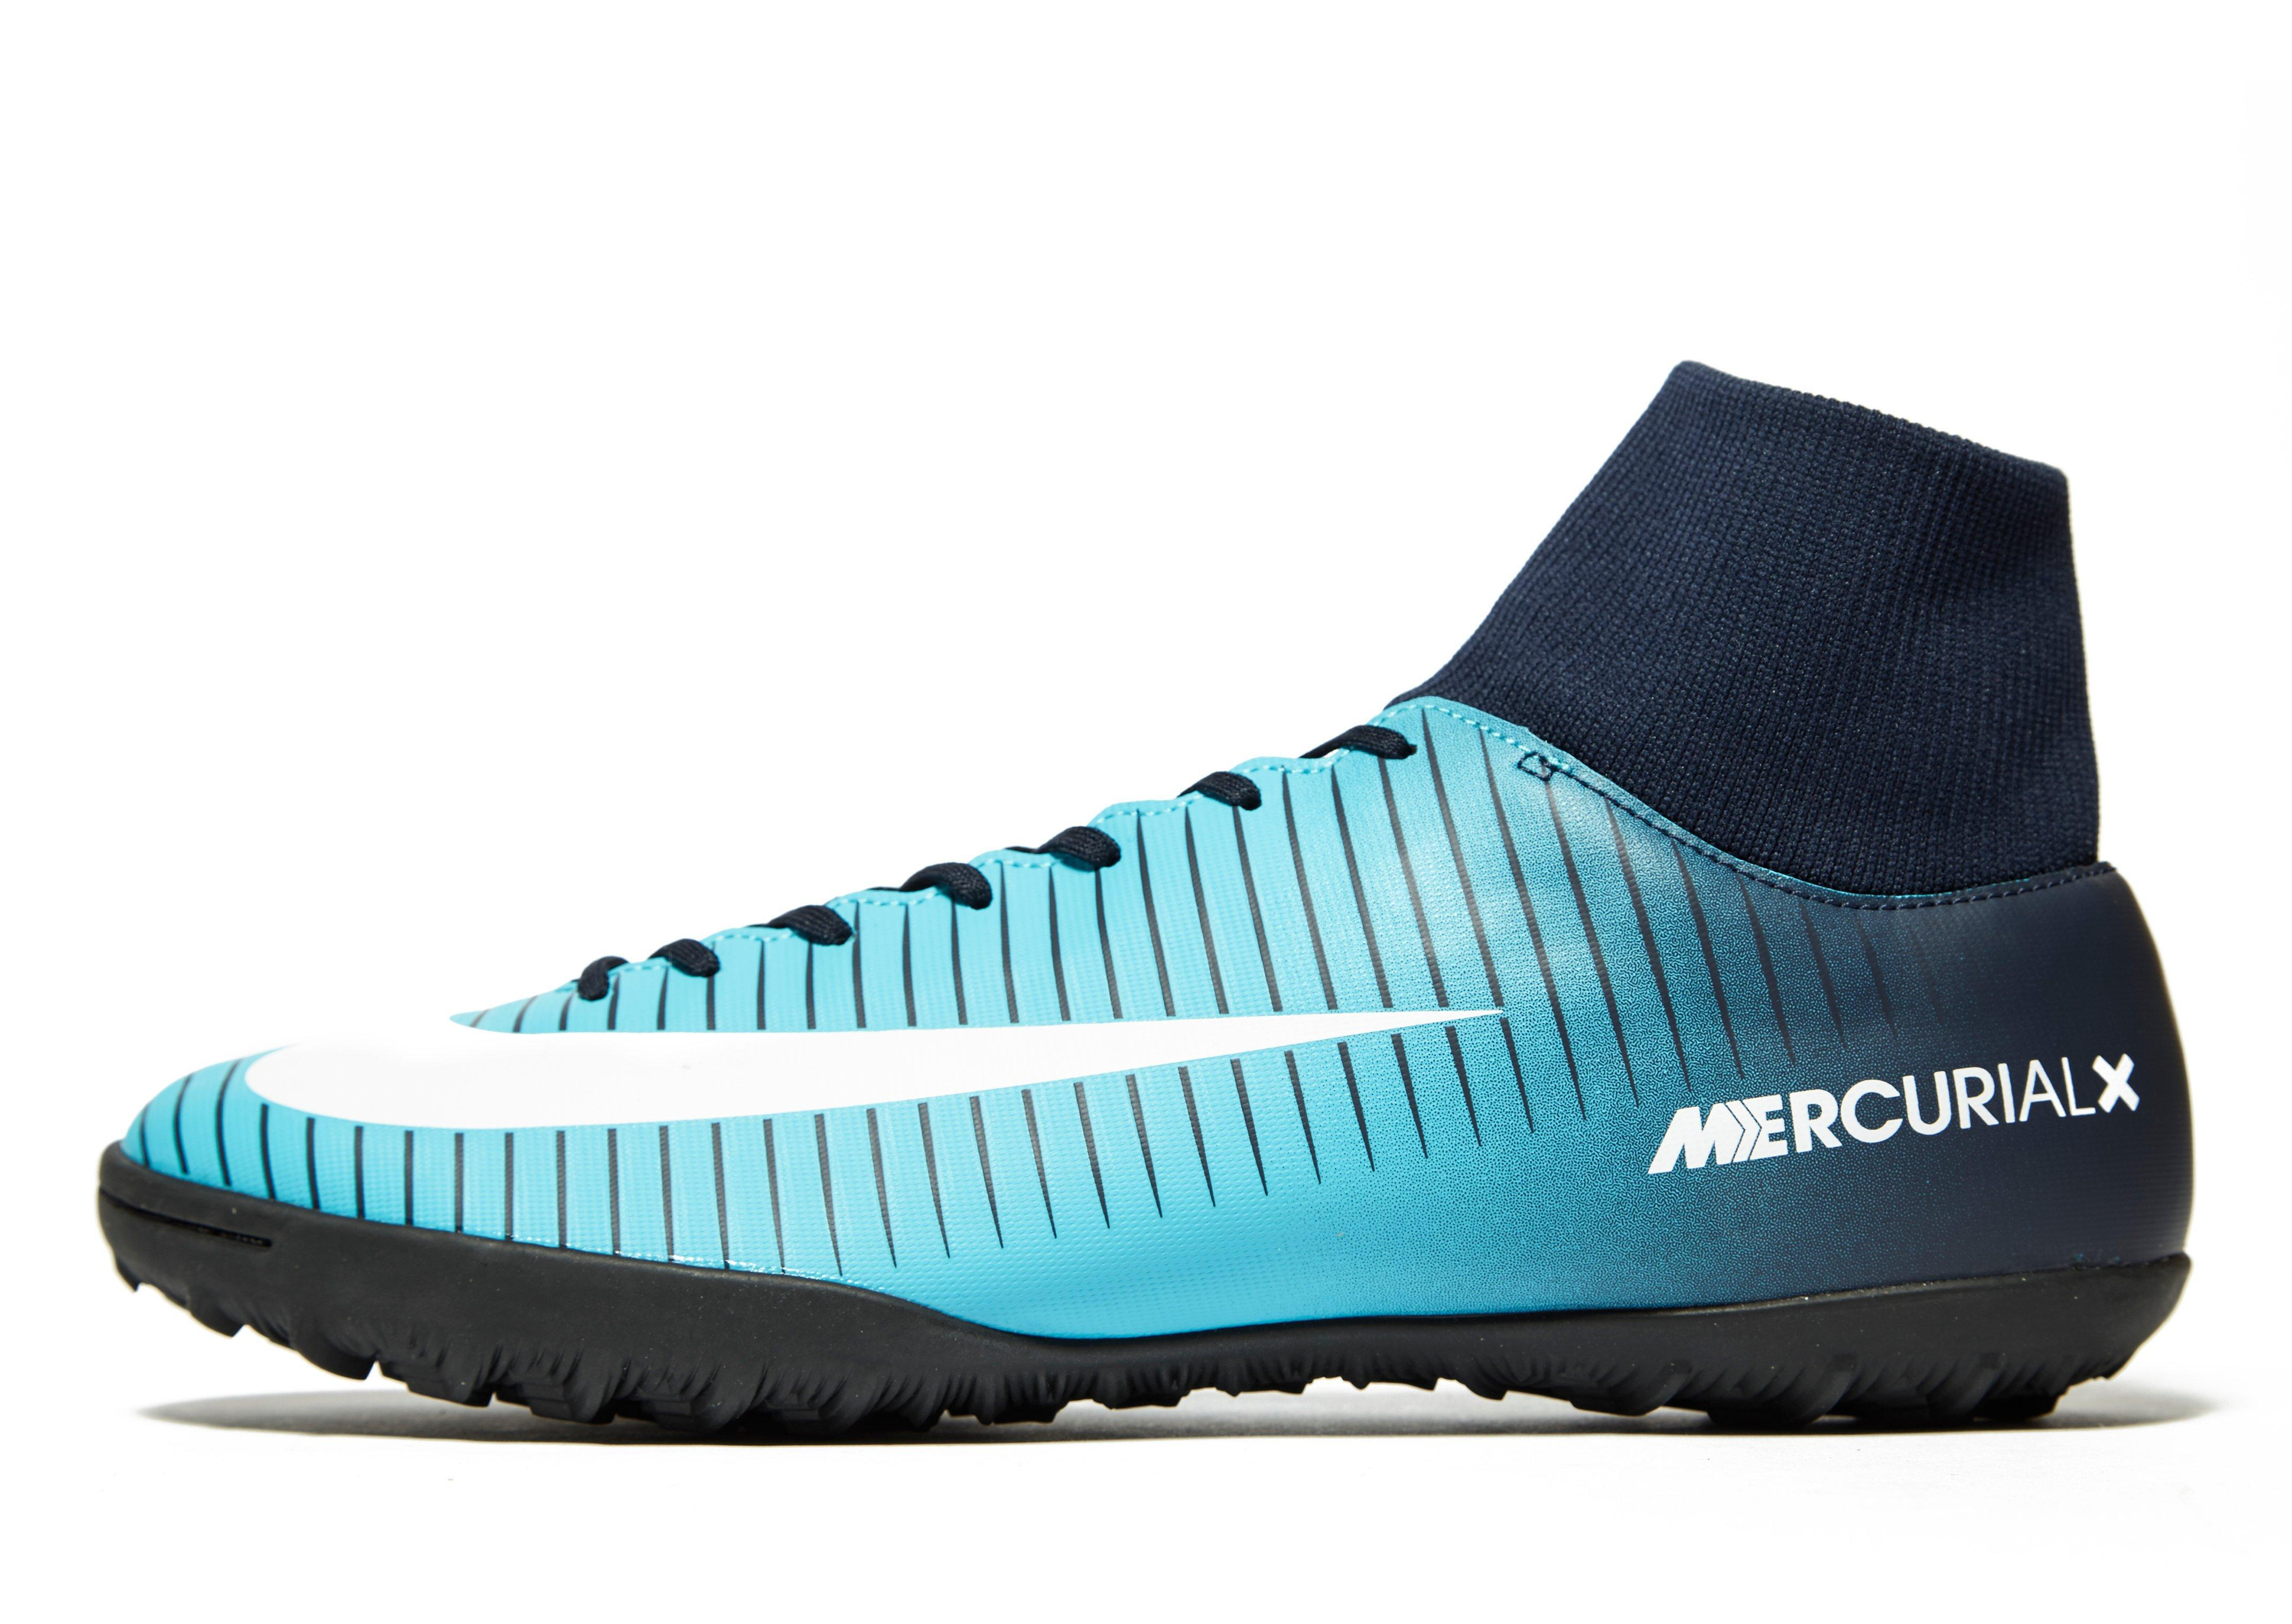 7d2d89e647a Nike Fire And Ice Mercurial Veloce Dynamic Fit Tf in Blue for Men - Lyst